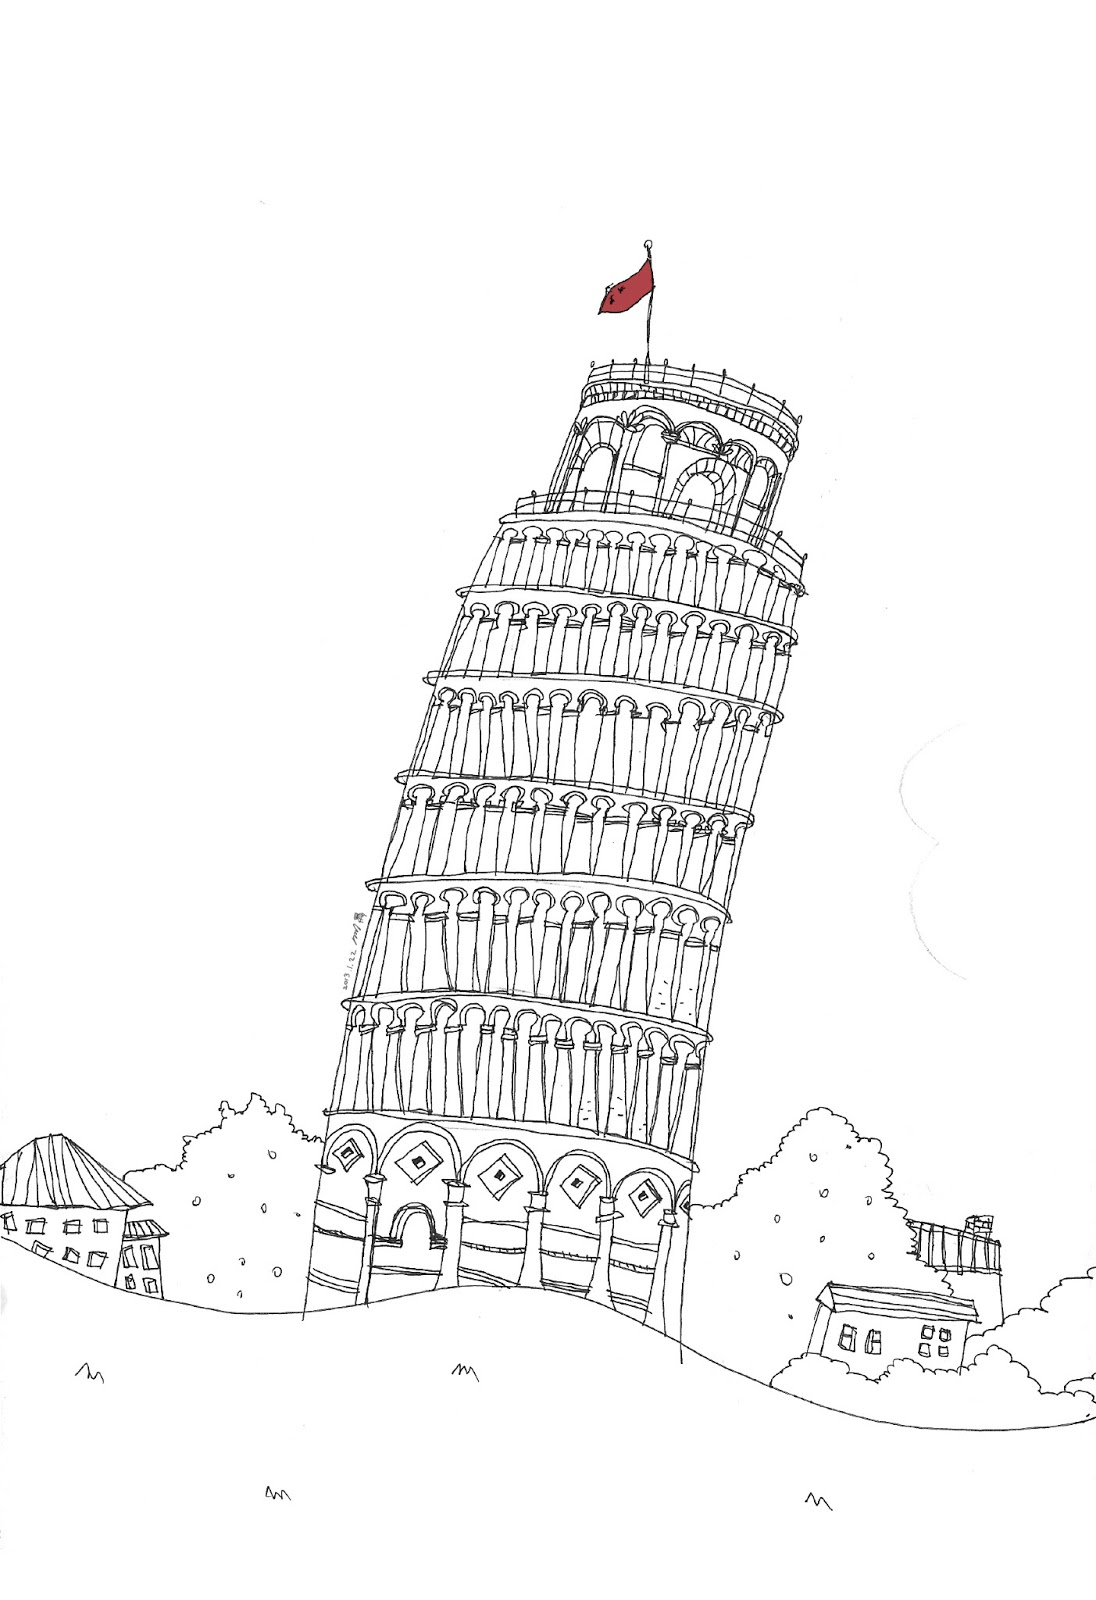 printable pictures of the leaning tower of pisa leaning tower of pisa coloring page google twit leaning of tower the printable pictures of pisa